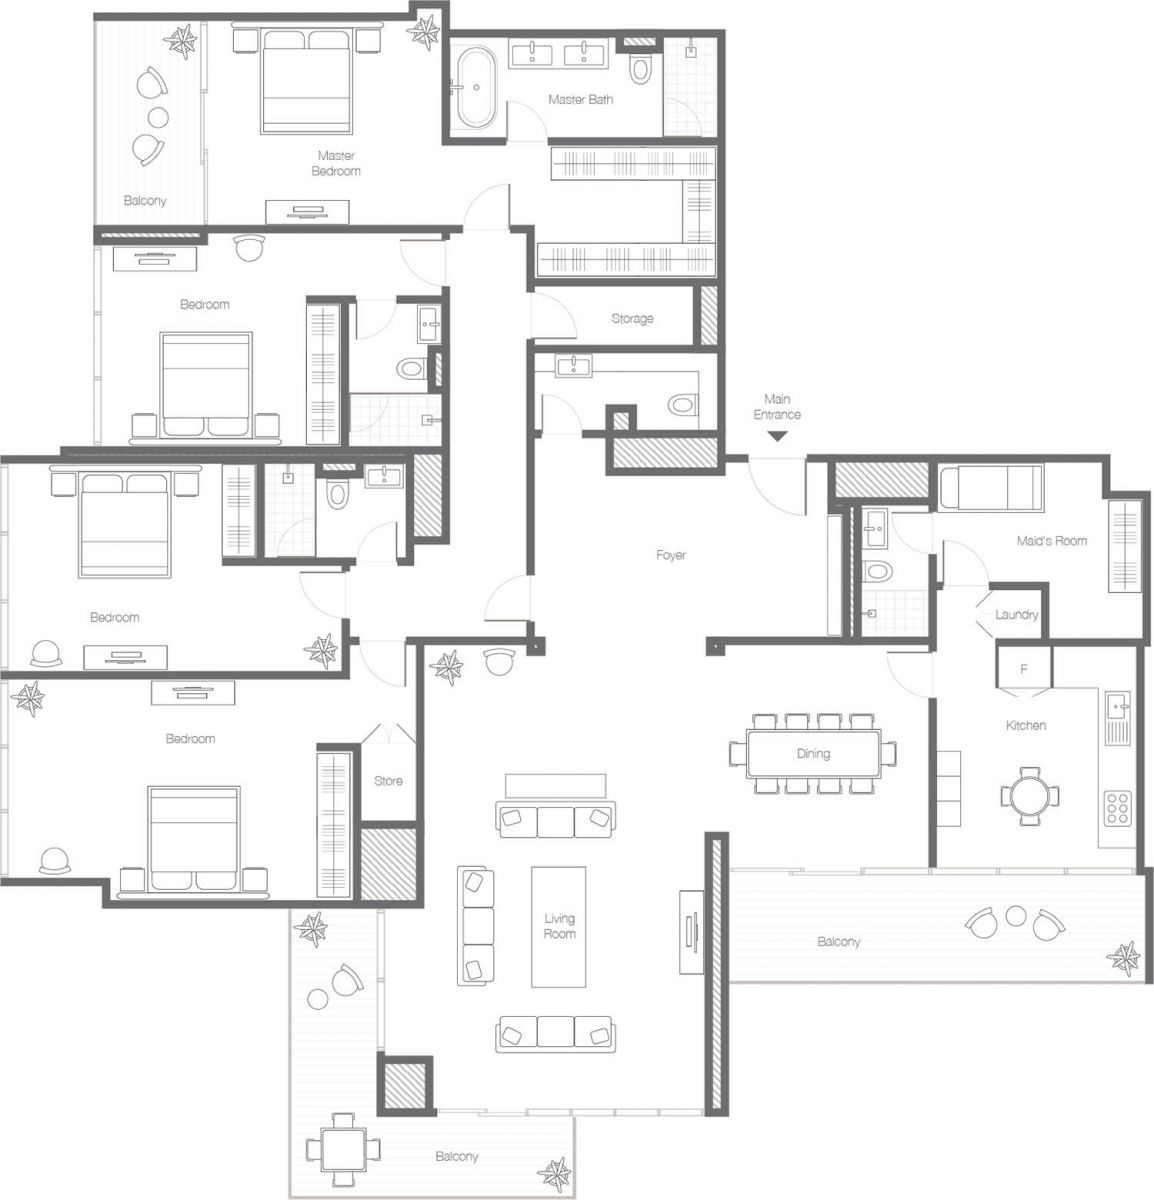 4 Bedroom Apartment - Type 4B.jpg